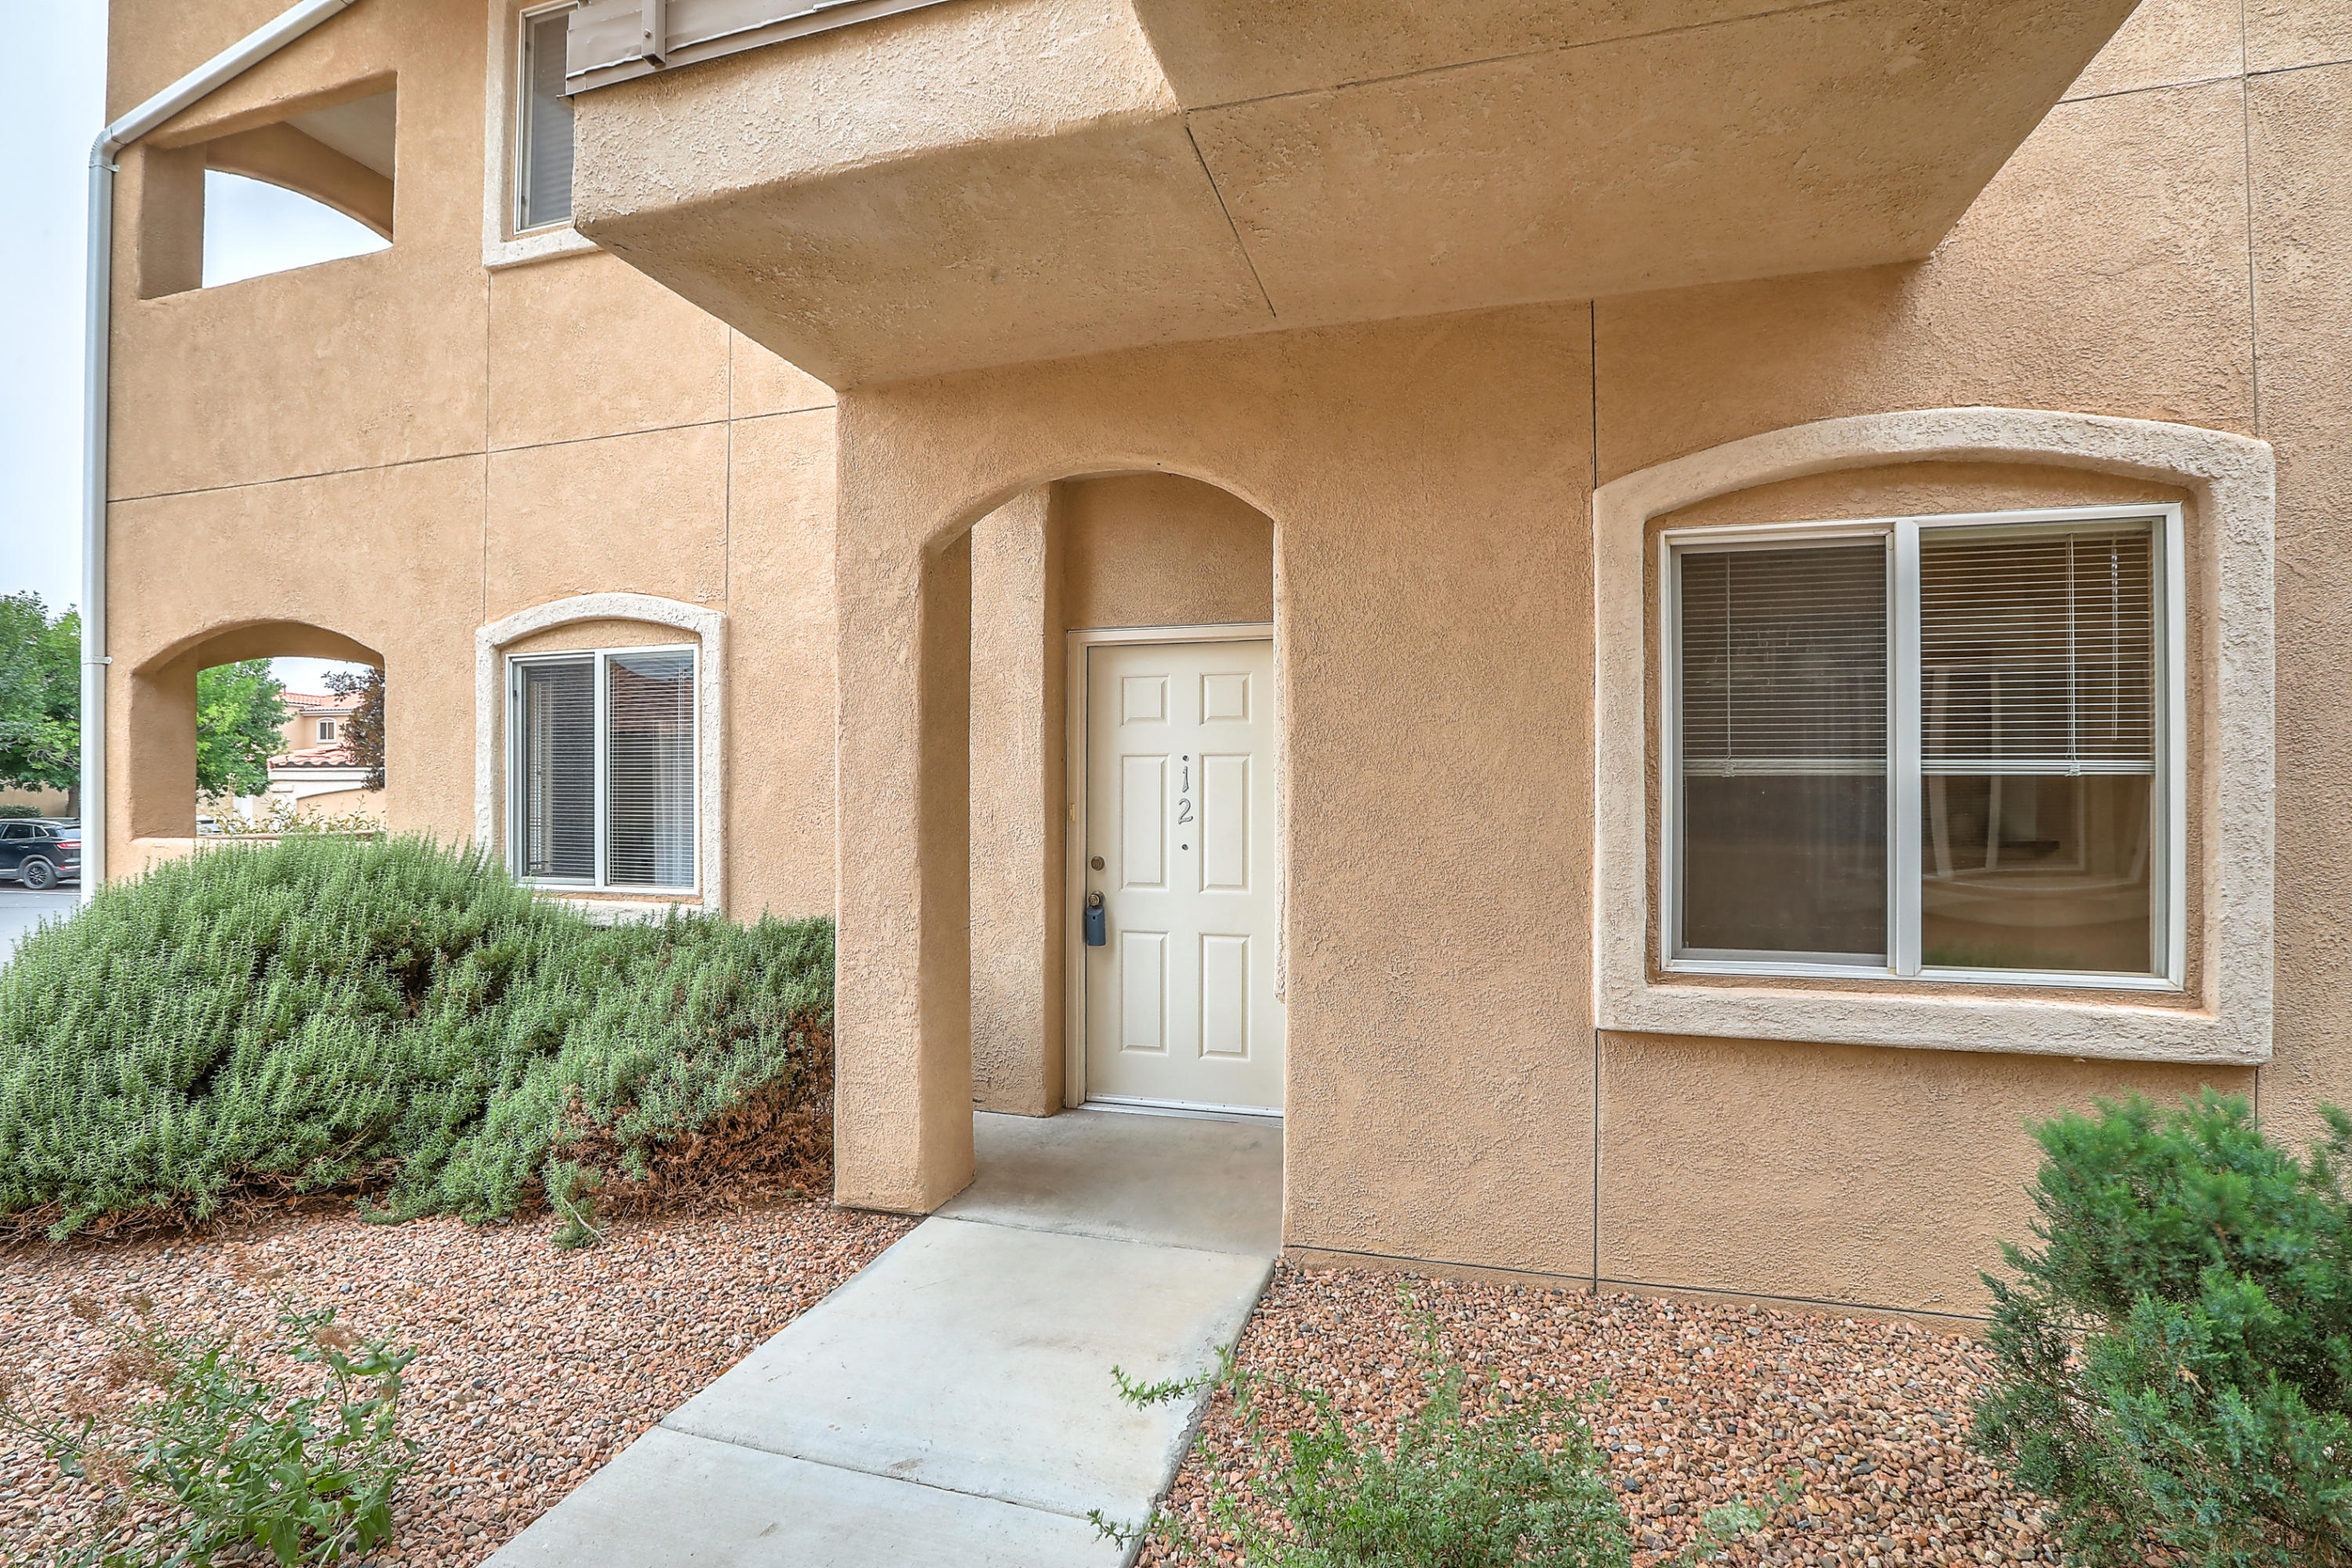 Beautiful 1 owner 1st floor Condo! Shows beautifully, brand new carpet! Shows meticulously! 2 large bedrooms and 2 large bathrooms1 Excellent location! Fabulous gated community with pool/club house, walking trails, parks!   Stunning location